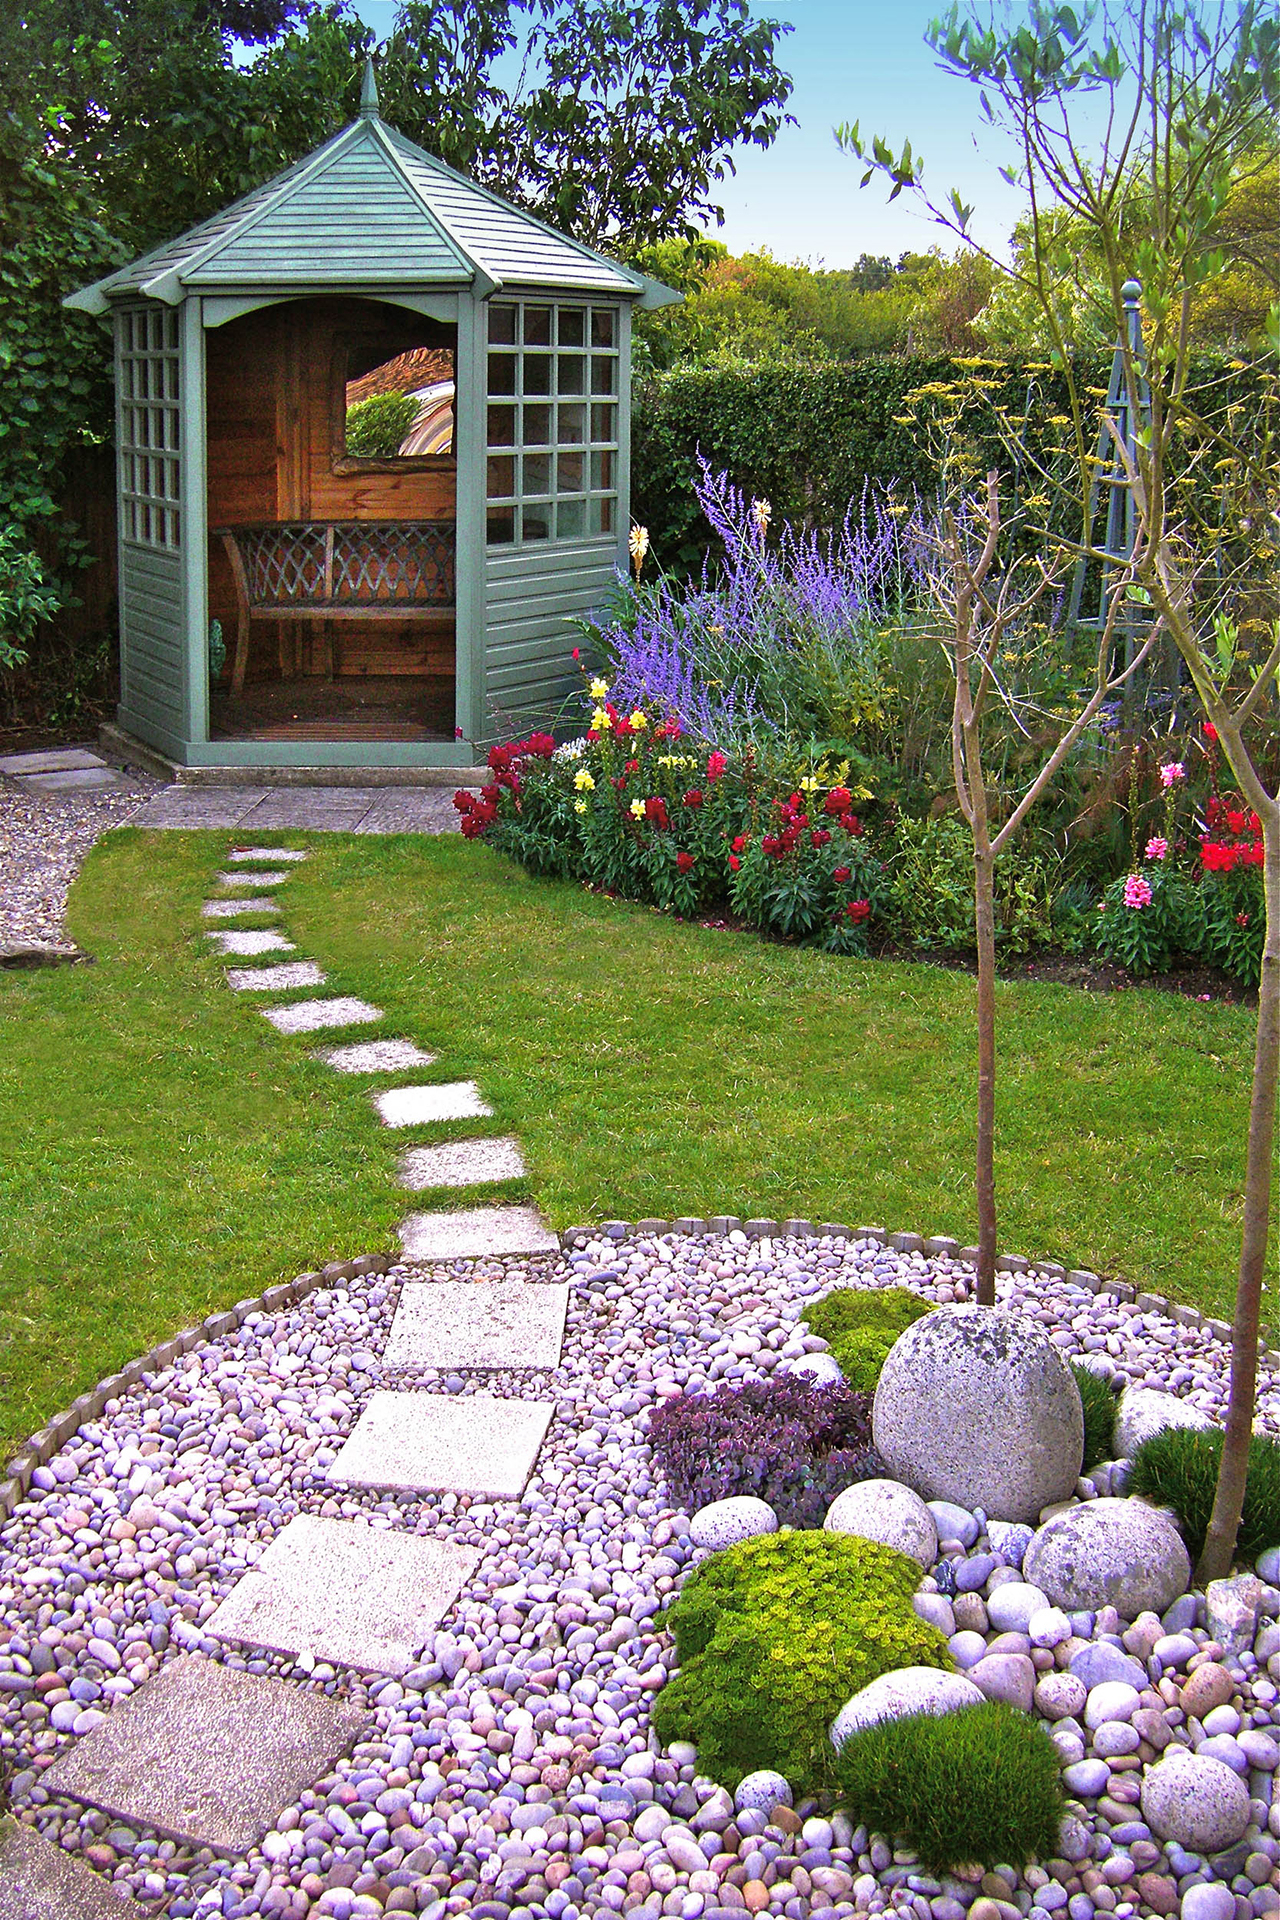 50 Best Backyard Landscaping Ideas And Designs In 2019 for Landscape Ideas For Backyards